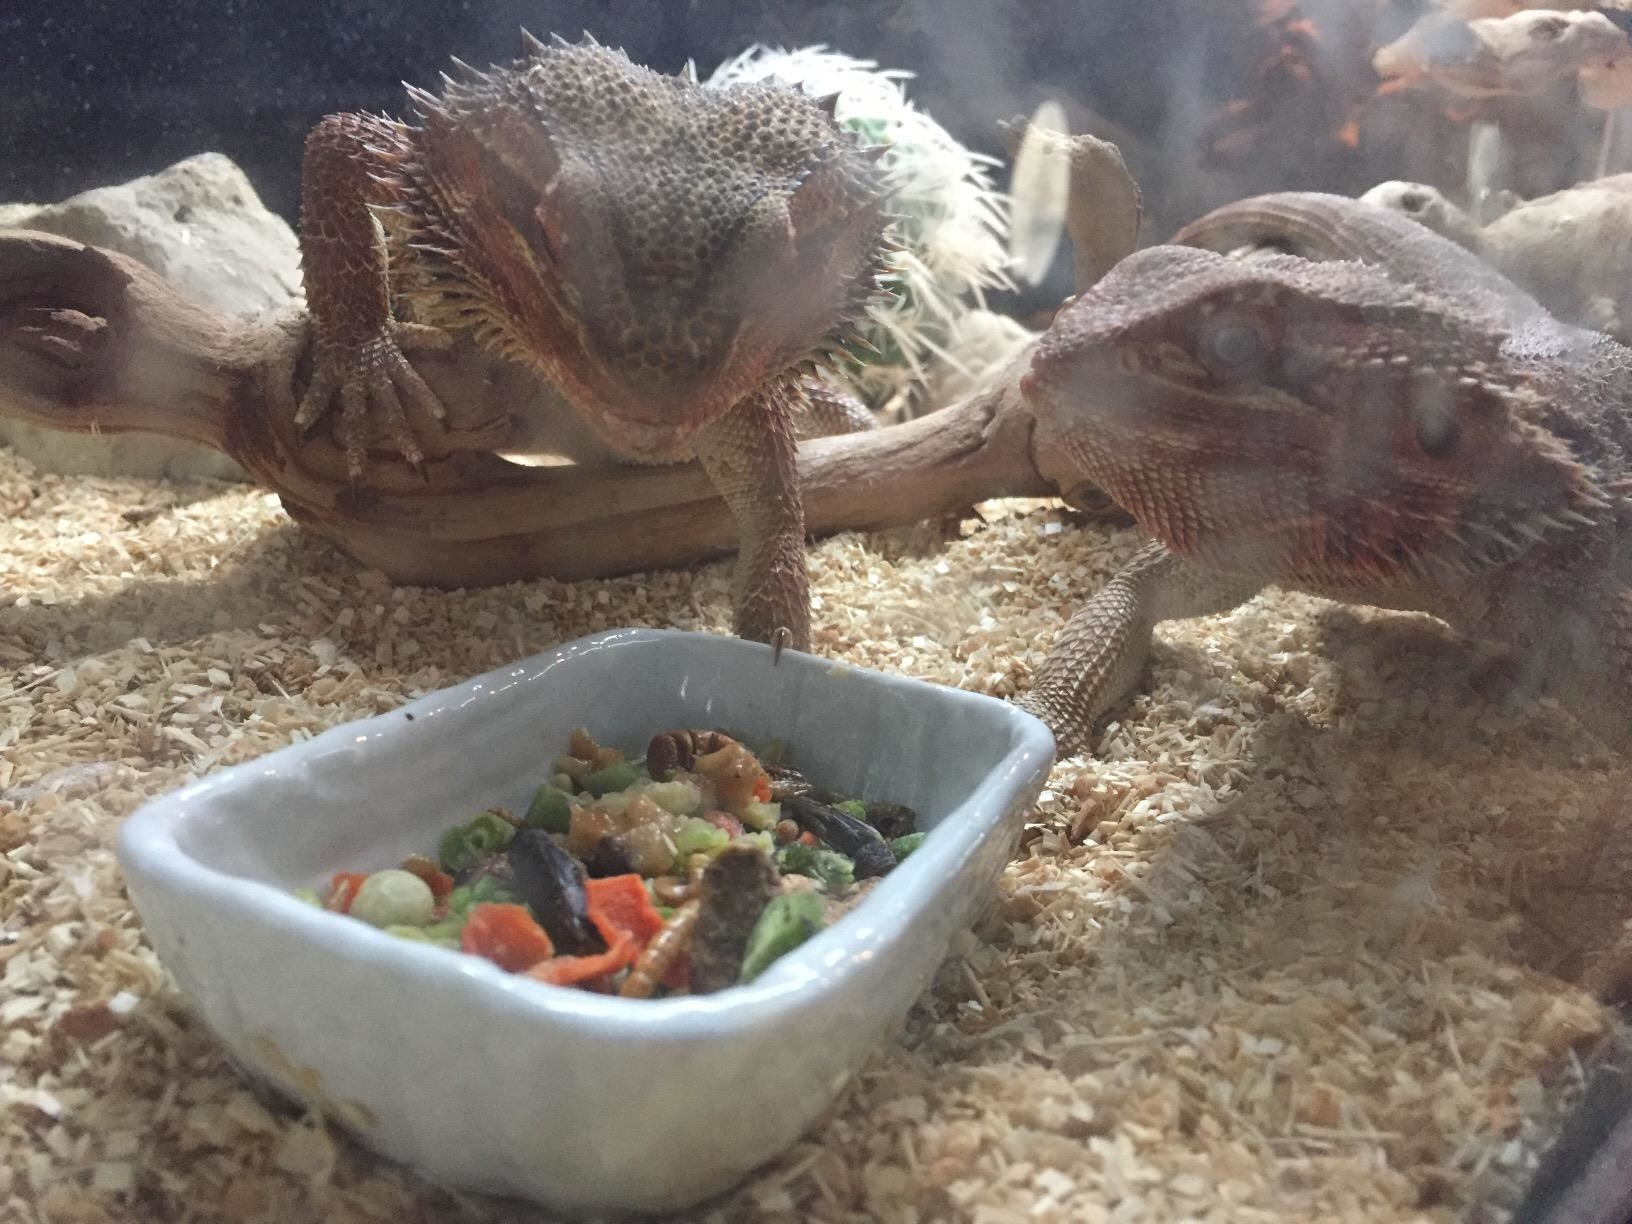 Reviewer image of product being enjoyed by reptiles